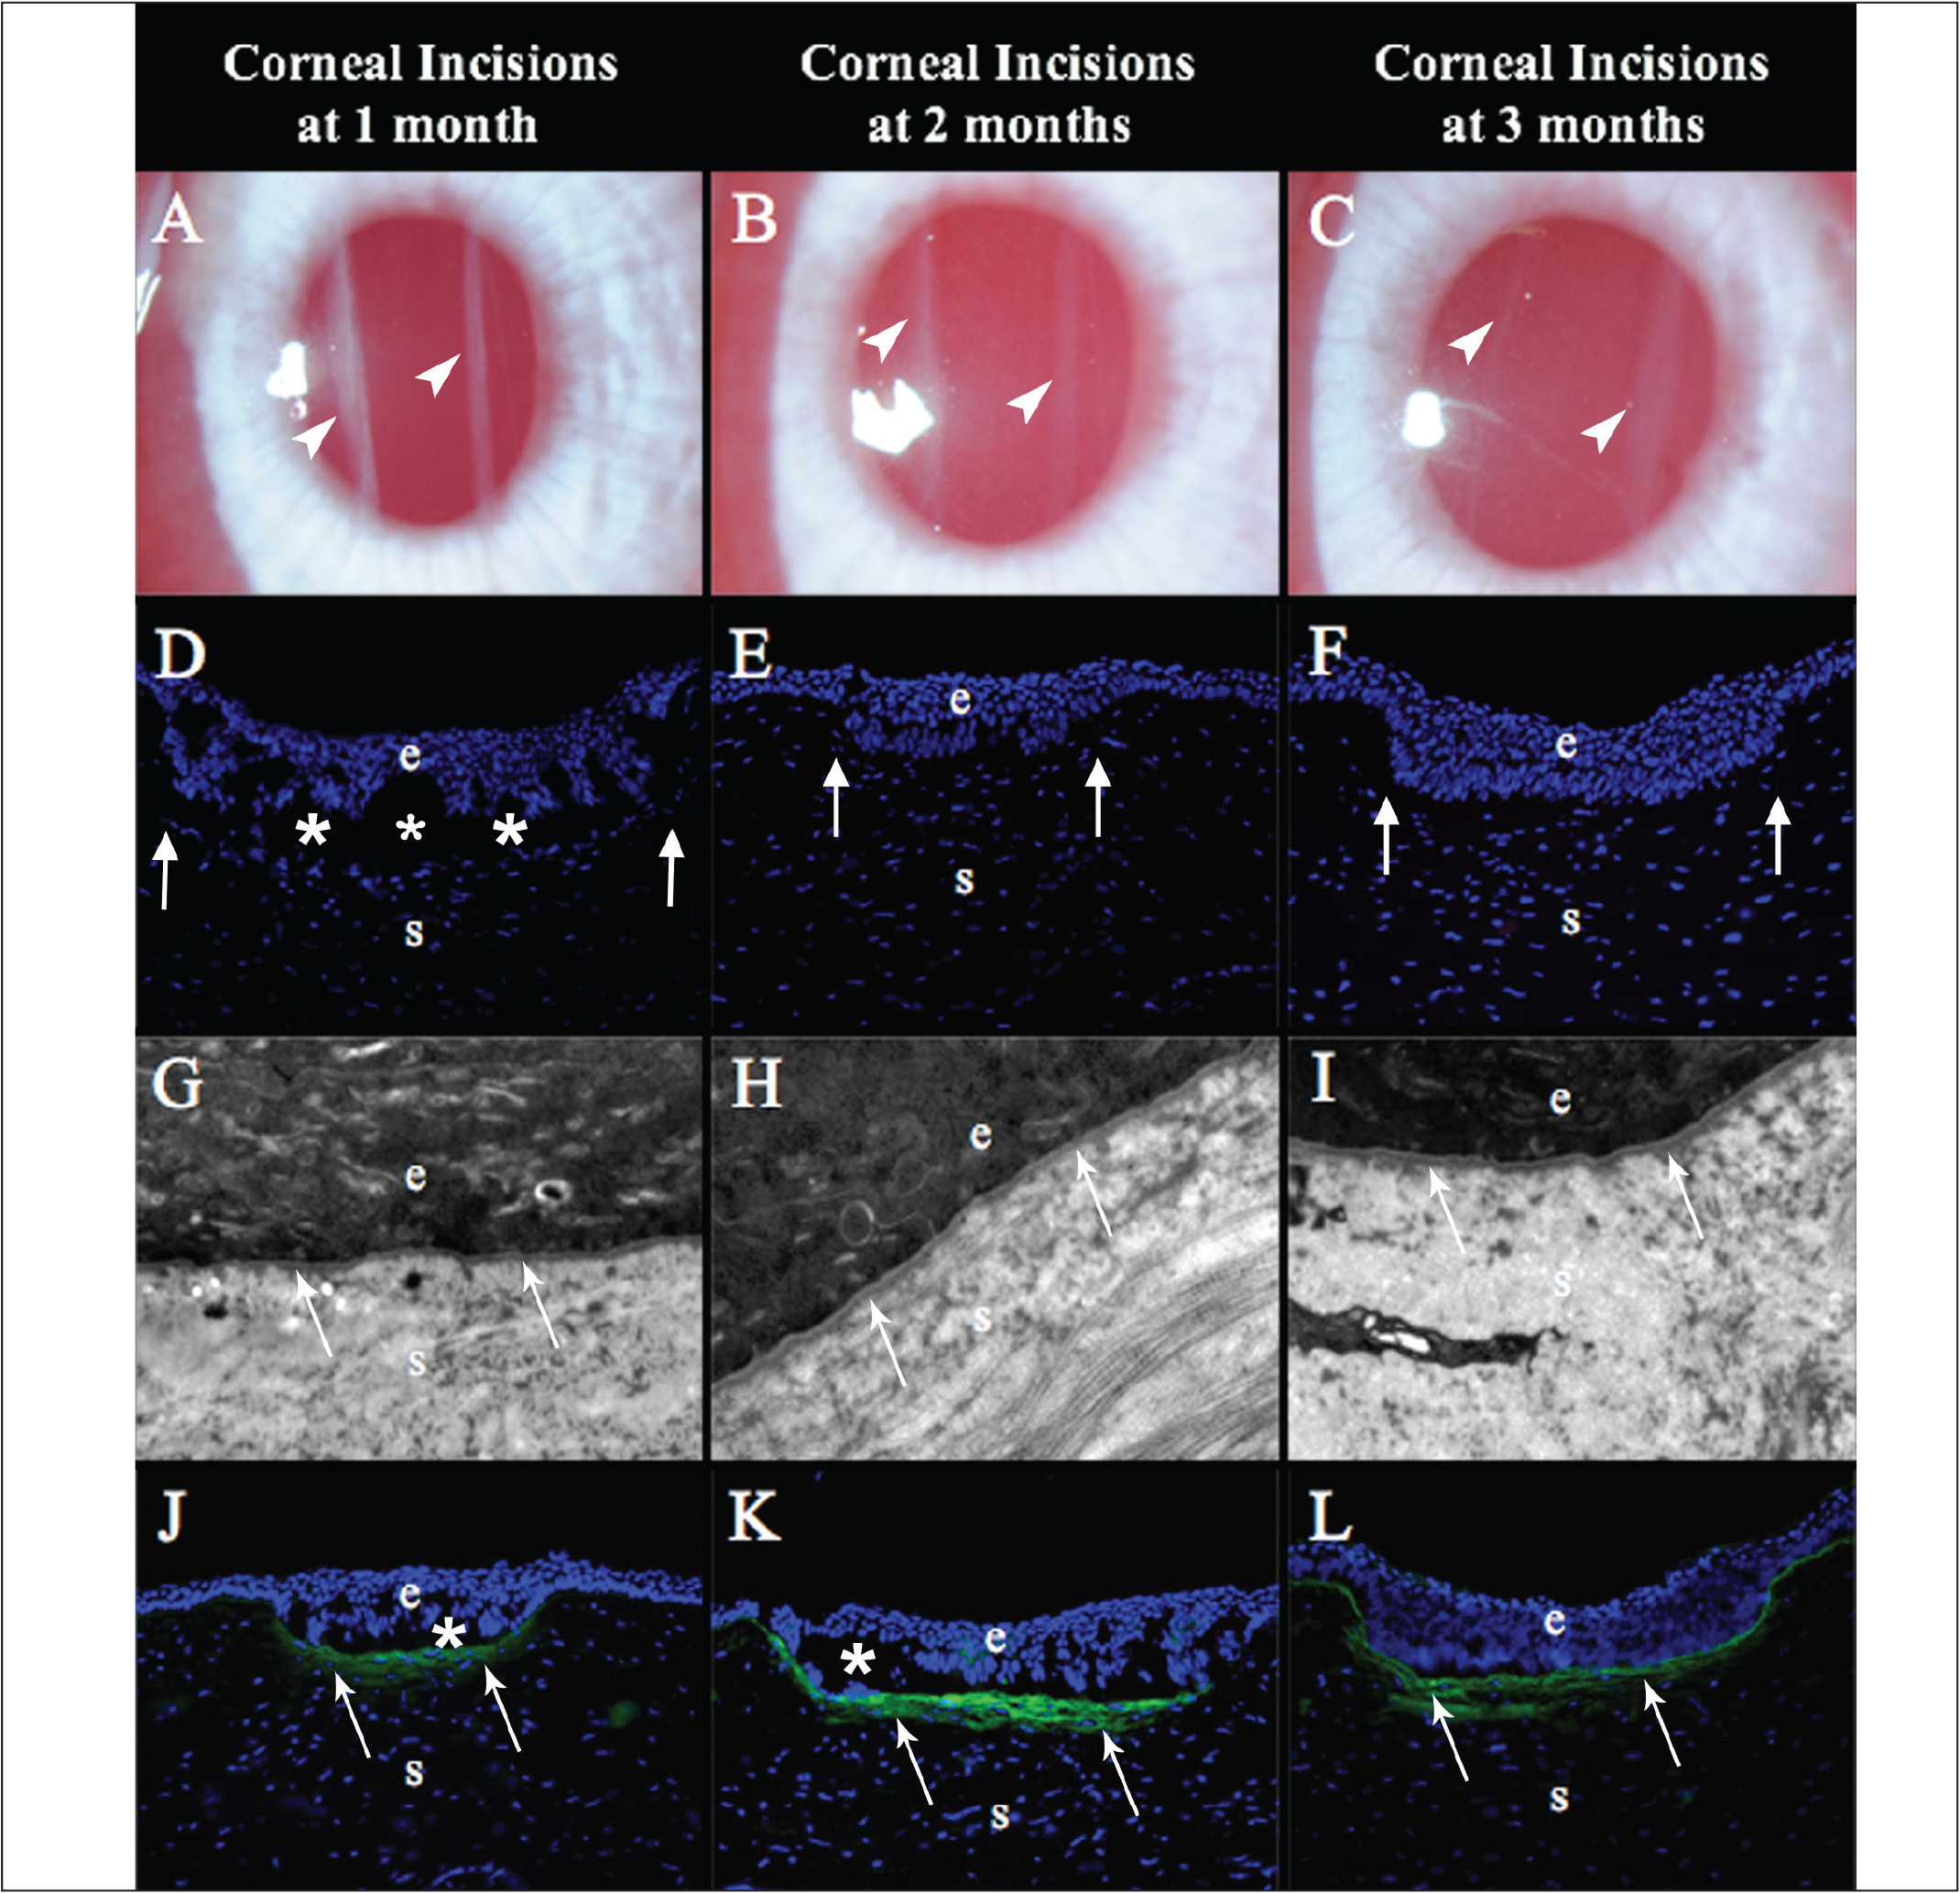 Rabbit corneas after nonperforating linear incisions. (A) At 1 month after surgery, the two incisions (arrowheads) were visible as dense linear opacities in all nine corneas that reached this time point (original magnification ×25). (B) At 2 months after surgery, the incisions (arrowheads) were less opaque in all six corneas that reached this time point (original magnification ×25). (C) At 3 months after surgery, the incisions (arrowheads) were faint compared to the 2-month time point in all three corneas that reached this time point (original magnification ×25). At (D) 1, (E) 2, or (F) 3 months after surgery there were no alpha-smooth muscle actin (α-SMA)+ cells anywhere in the cornea, including around the epithelial plugs (arrows), in three corneas at each time point (original magnification ×200). At (G) 1, (H) 2, and (I) 3 months after surgery the EBM (arrows), including lamina lucida and lamina densa, were fully regenerated and surrounded the epithelial plugs in all three corneas at each time point (original magnification ×23,000). (J) At 1 month after surgery, both incisions in each of the three corneas studied had collagen type III (COL3) (arrows) deposited in the subepithelial stroma beneath the epithelial plugs (original magnification ×200). At (K) 2 and (L) 3 months after surgery, more COL3 deposition (arrows), compared to the 1-month time point, was noted in the subepithelial stroma surrounding the epithelial plugs in each of the three corneas at each time points. Blue is DAPI staining of cell nuclei. e = epithelium; s = stroma; * = artifact separation of the epithelium from the stroma that occurs during cutting of the section.